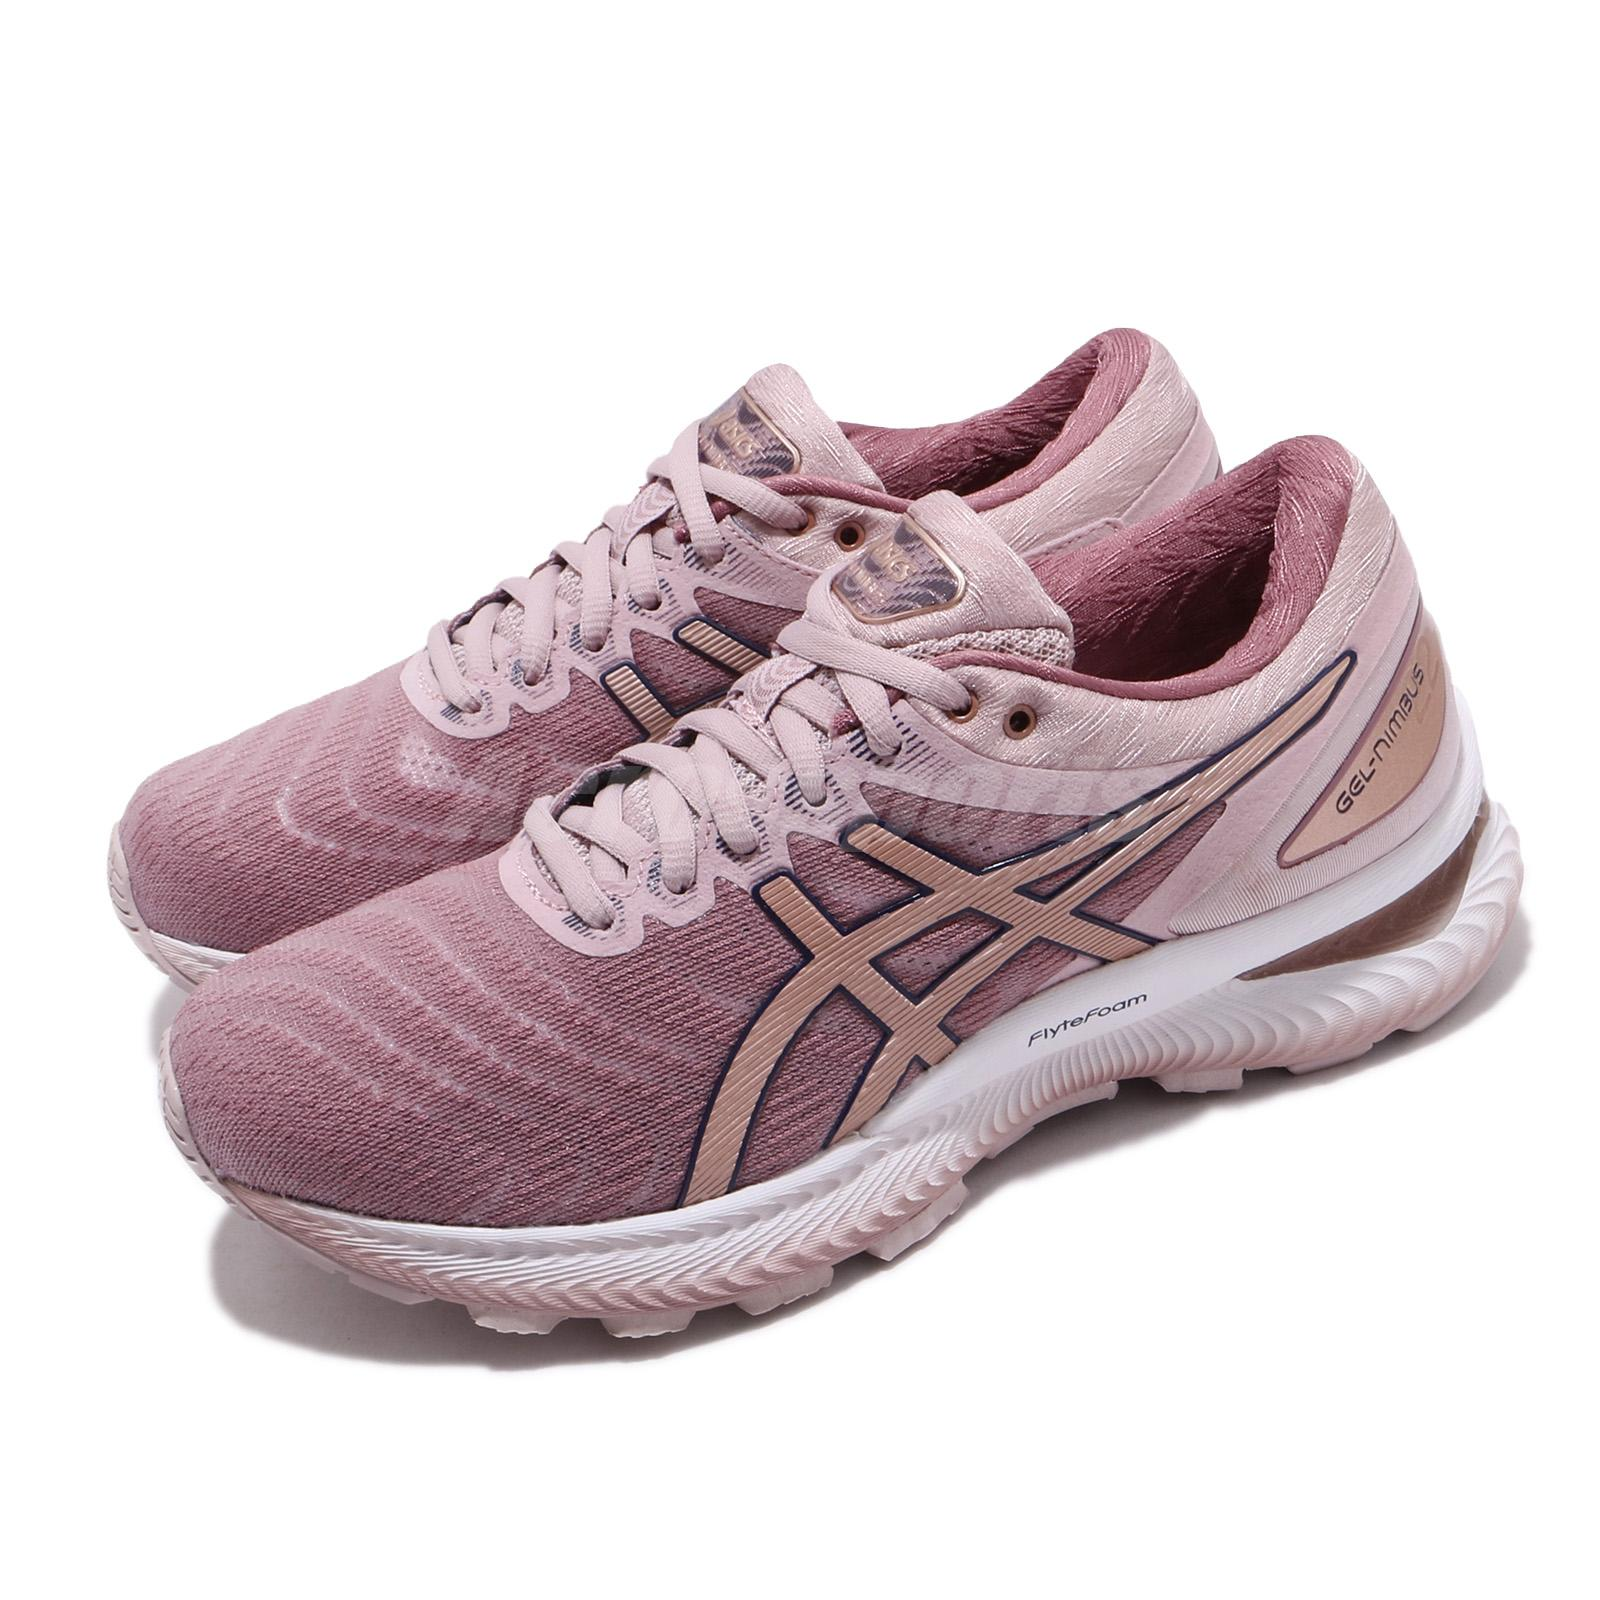 Details about Asics Gel-Nimbus 22 D Wide Pink Rose Gold Women Running Shoes  1012A586-702